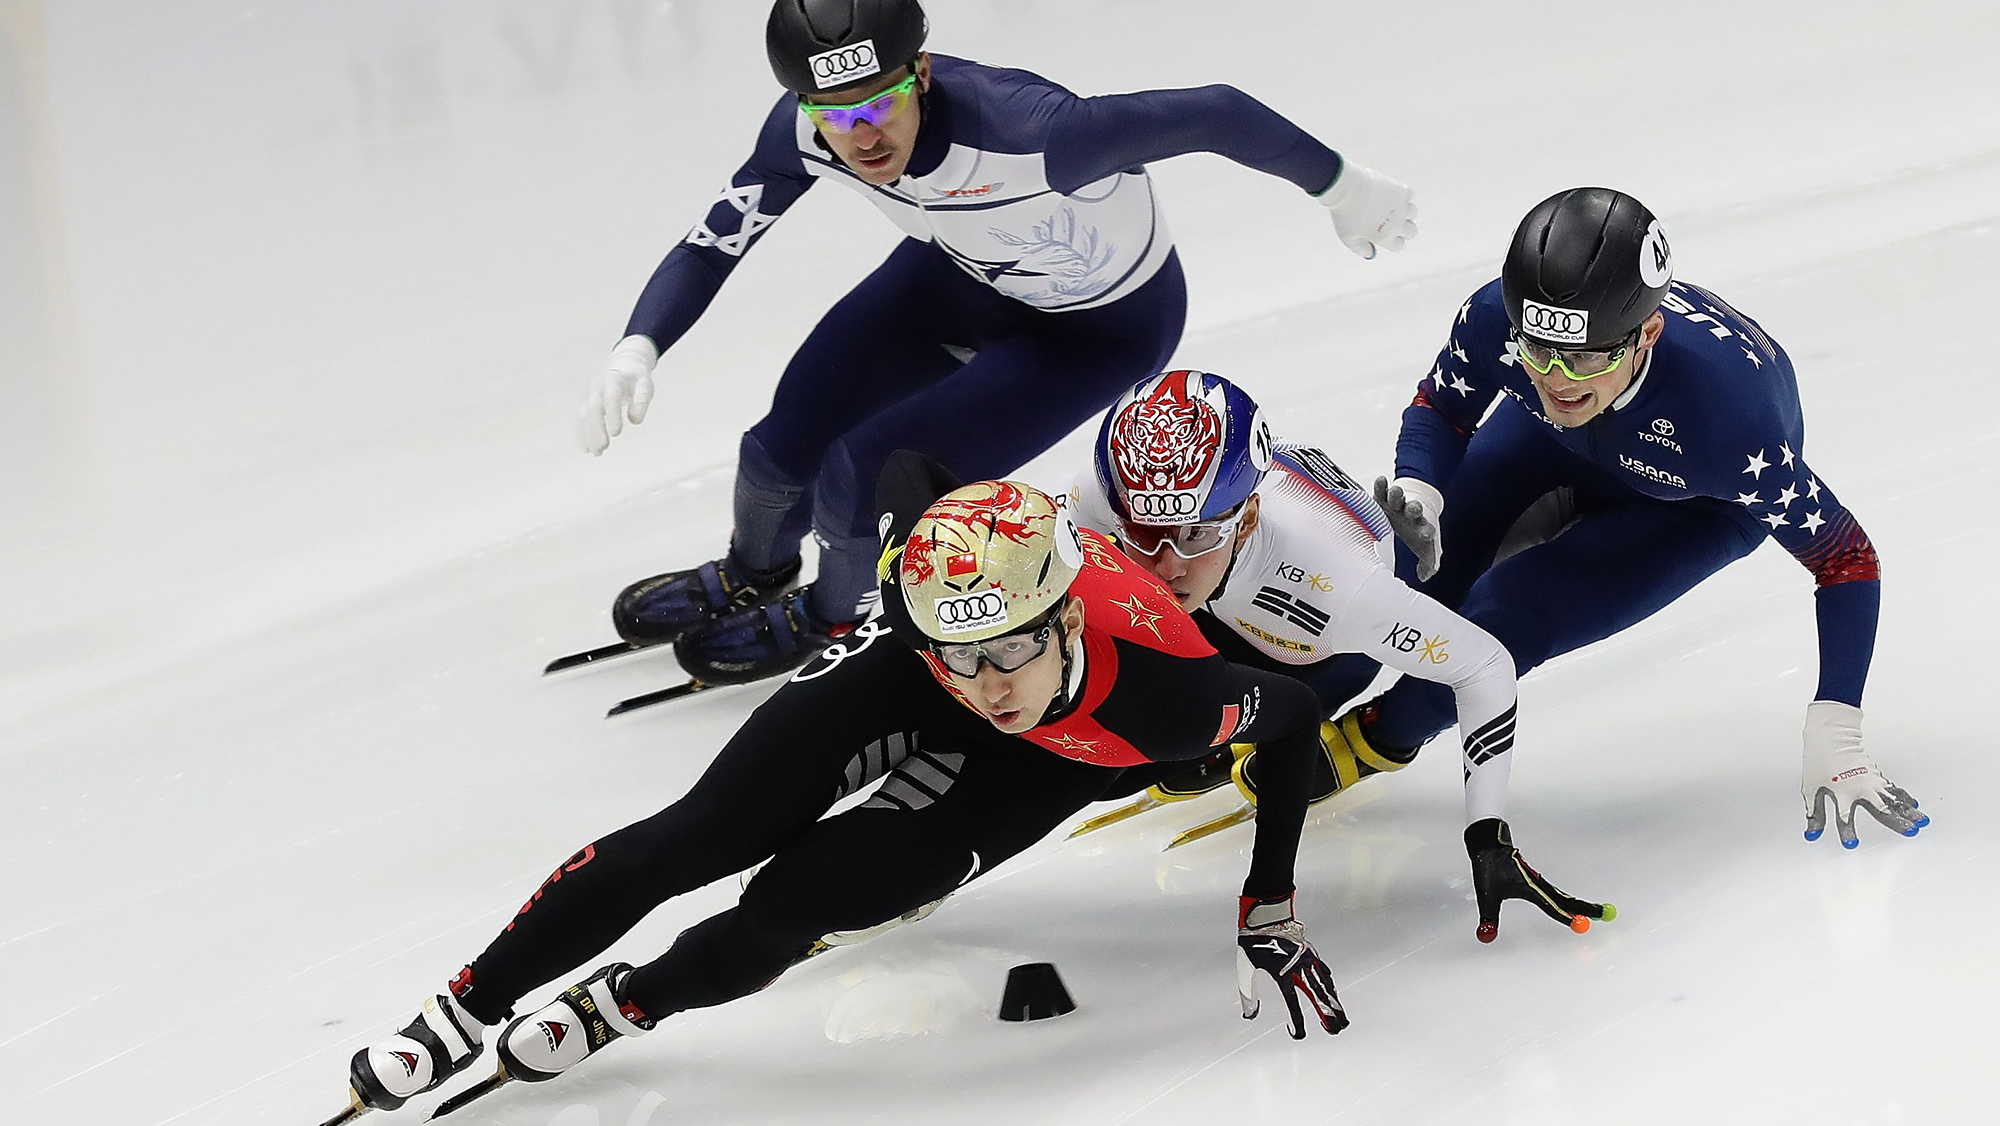 Winter Olympics: Skeleton Guide and Preview for PyeongChang